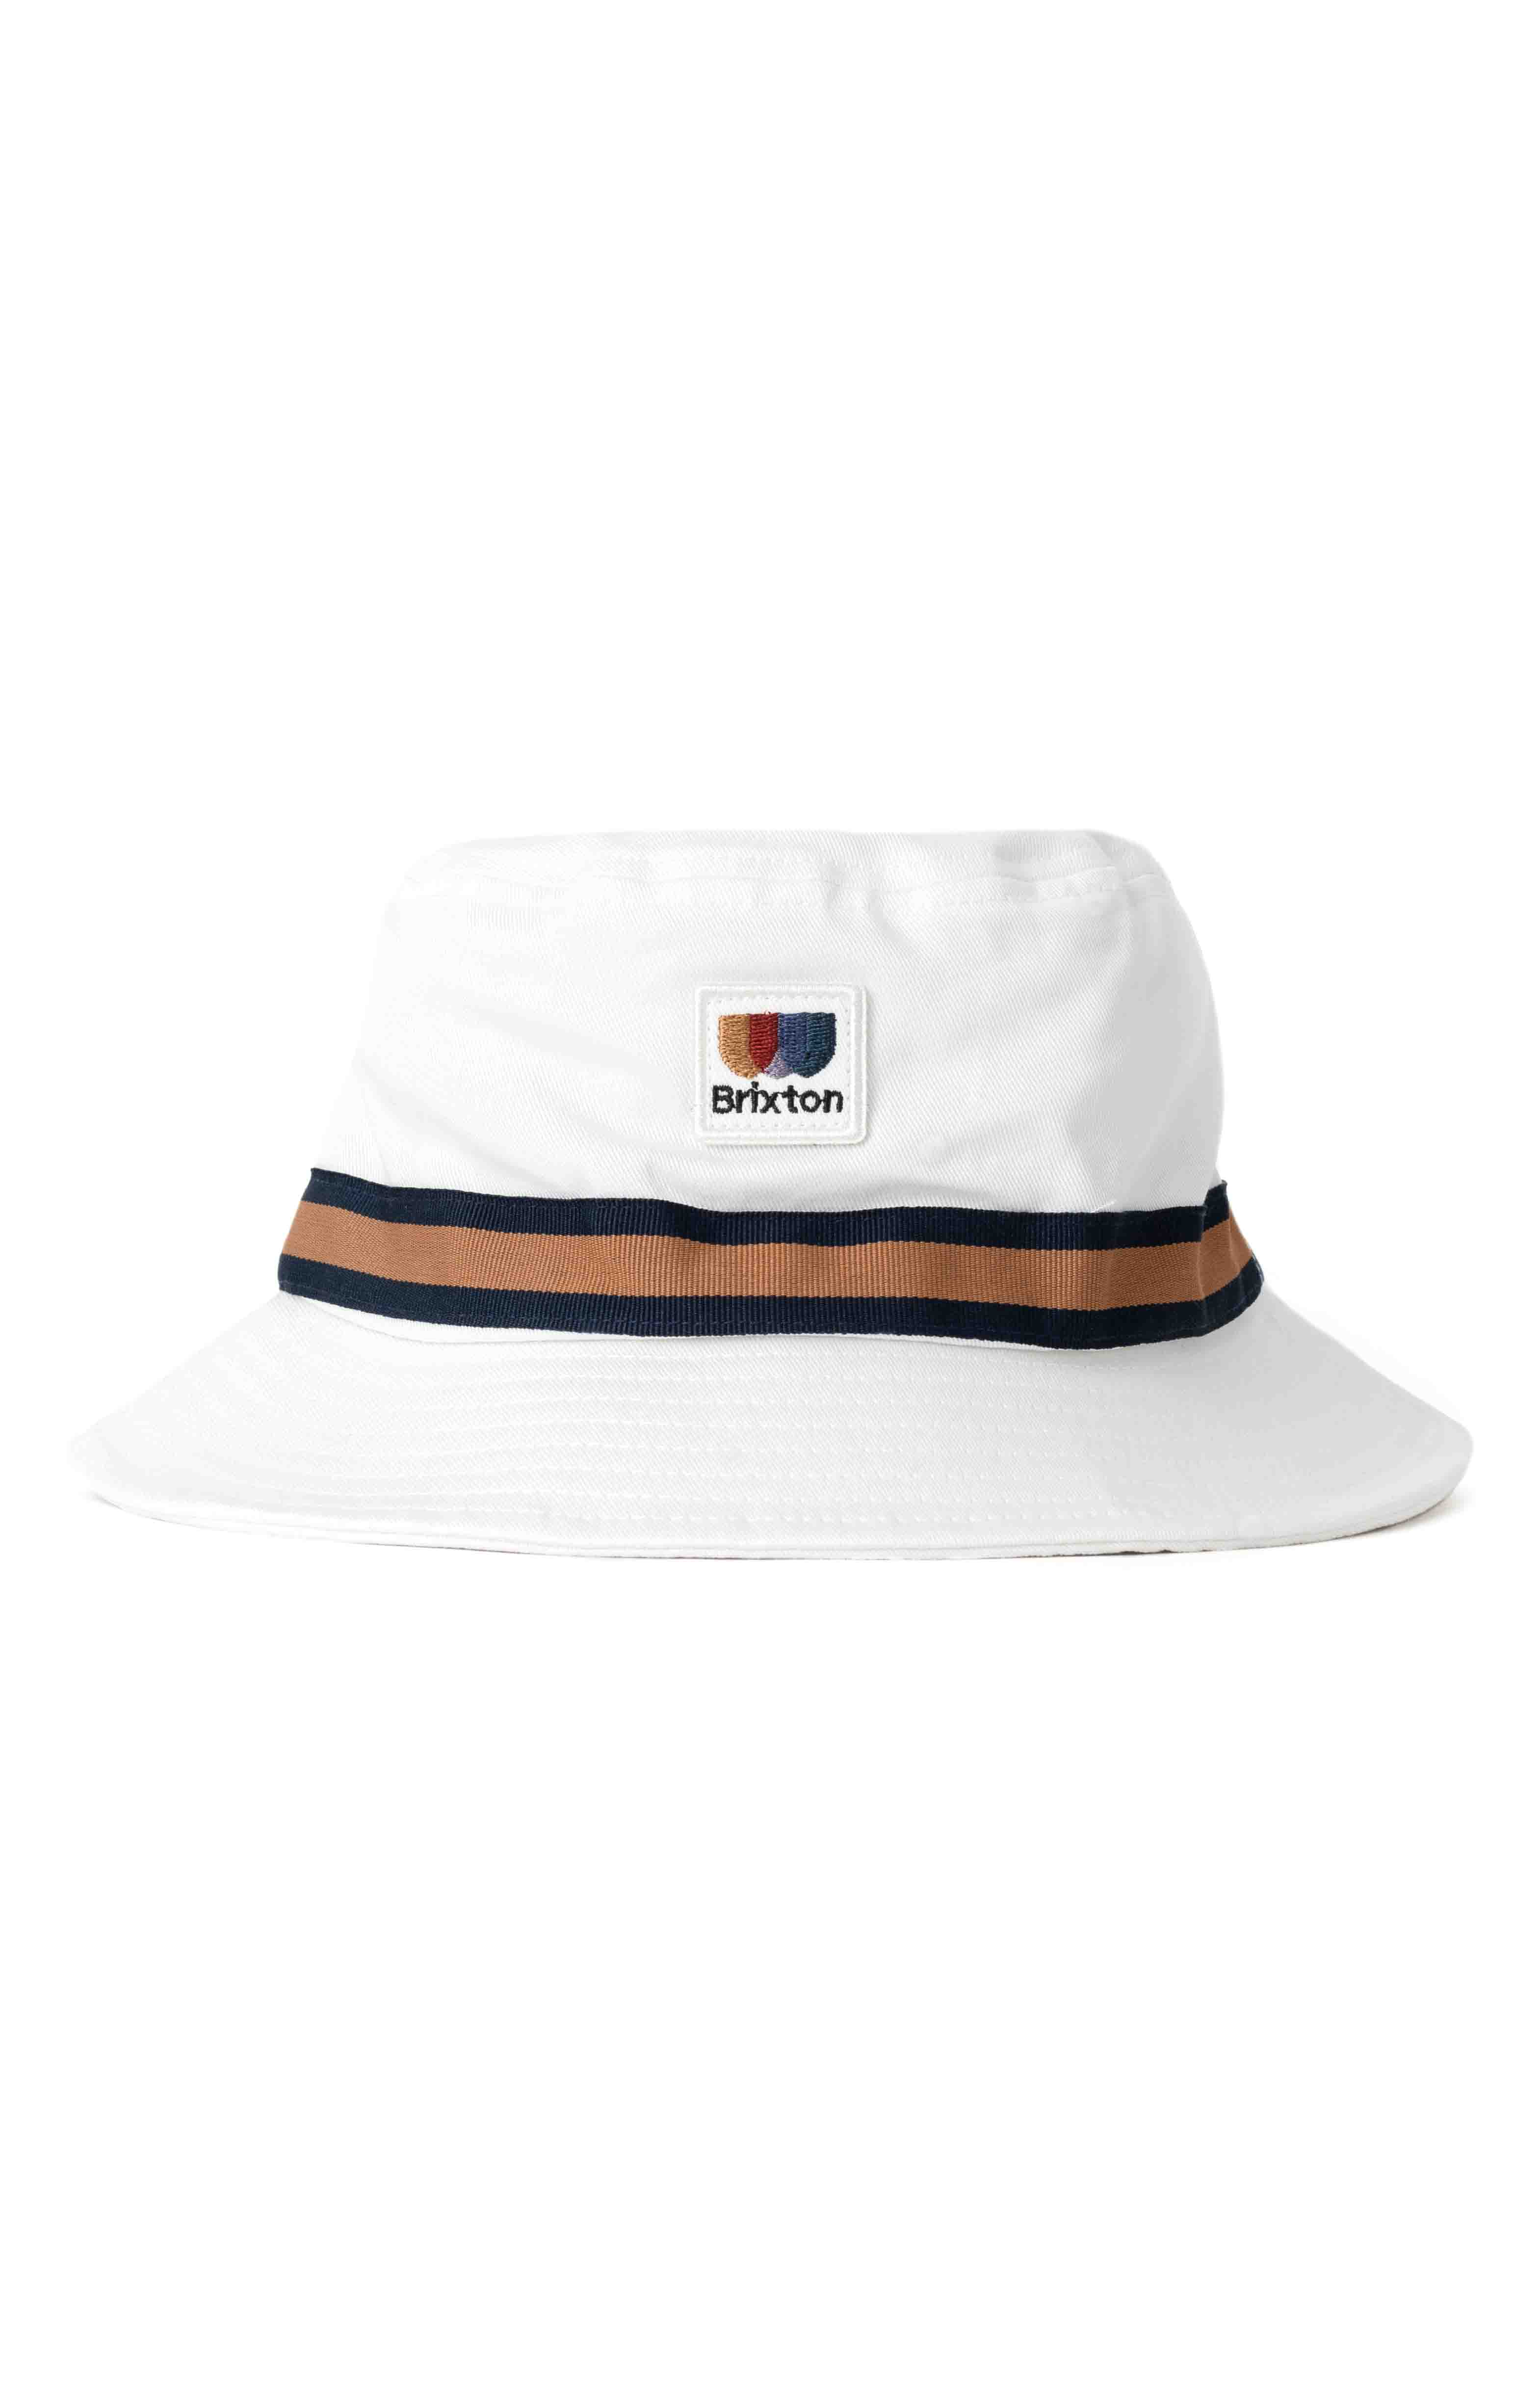 Alton Packable Bucket Hat - Off White/Washed Navy 2